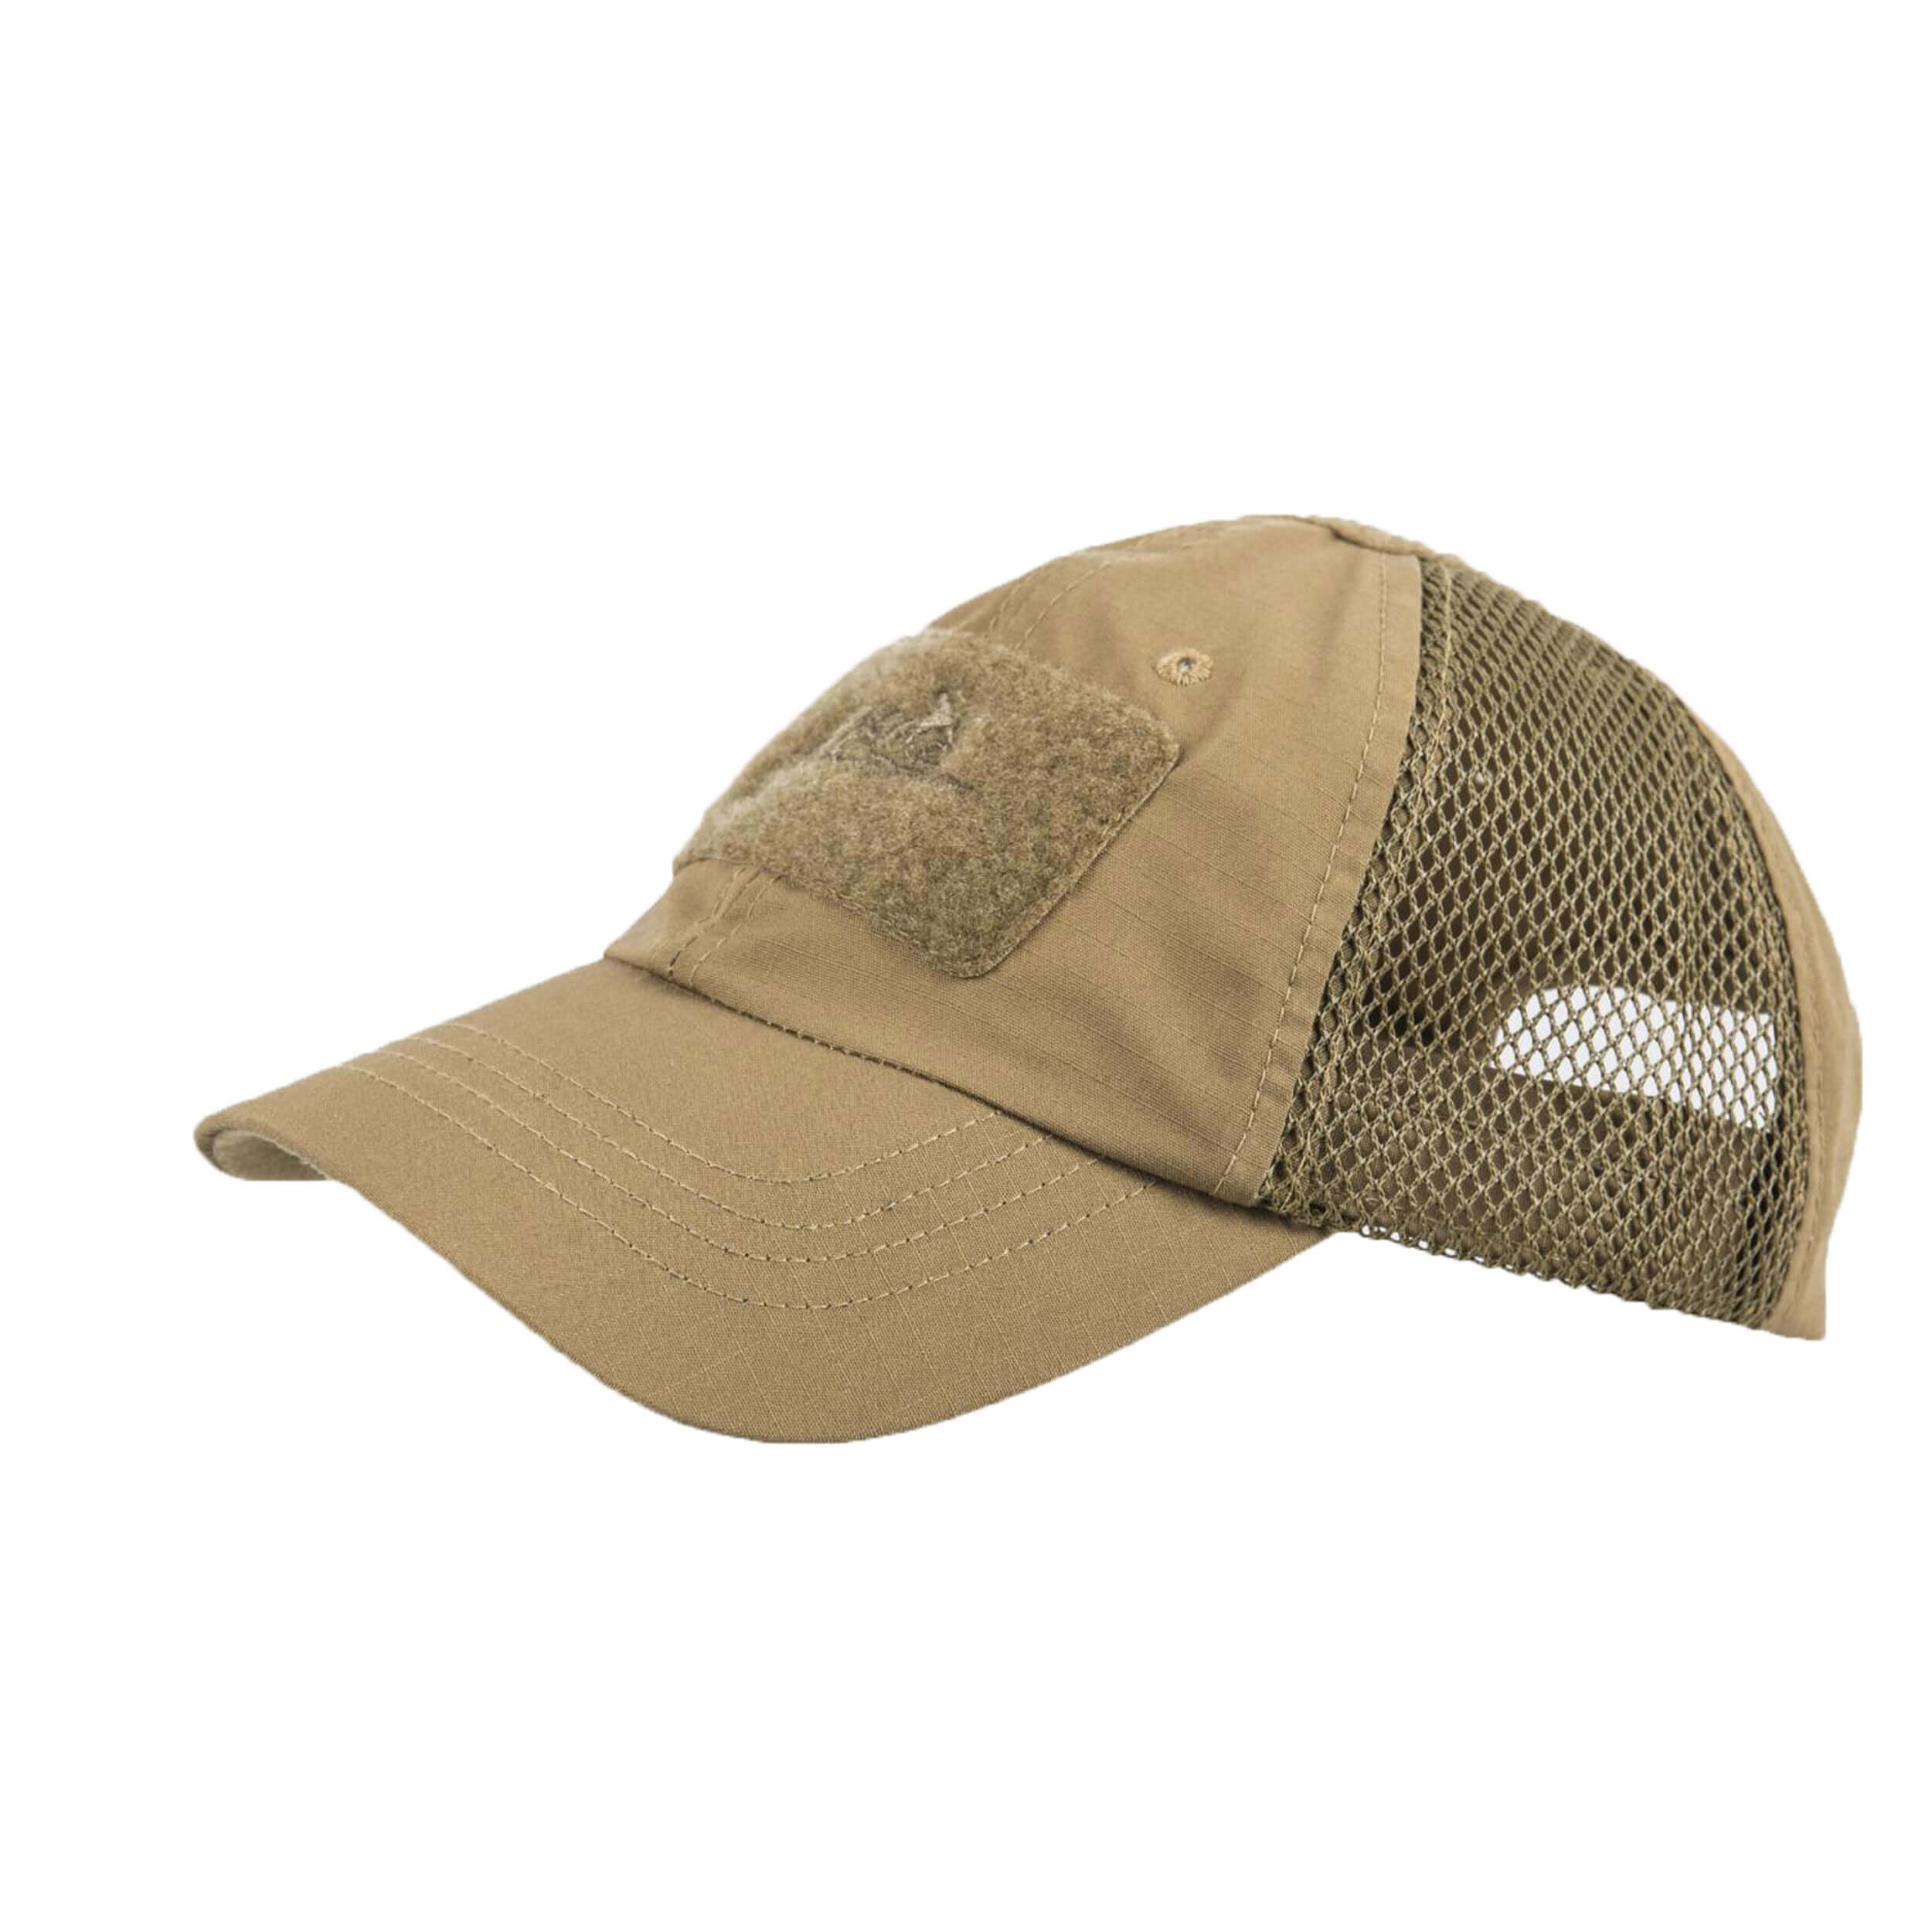 Helikon-Tex Baseball Vent Cap - PolyCotton Ripstop - Coyote